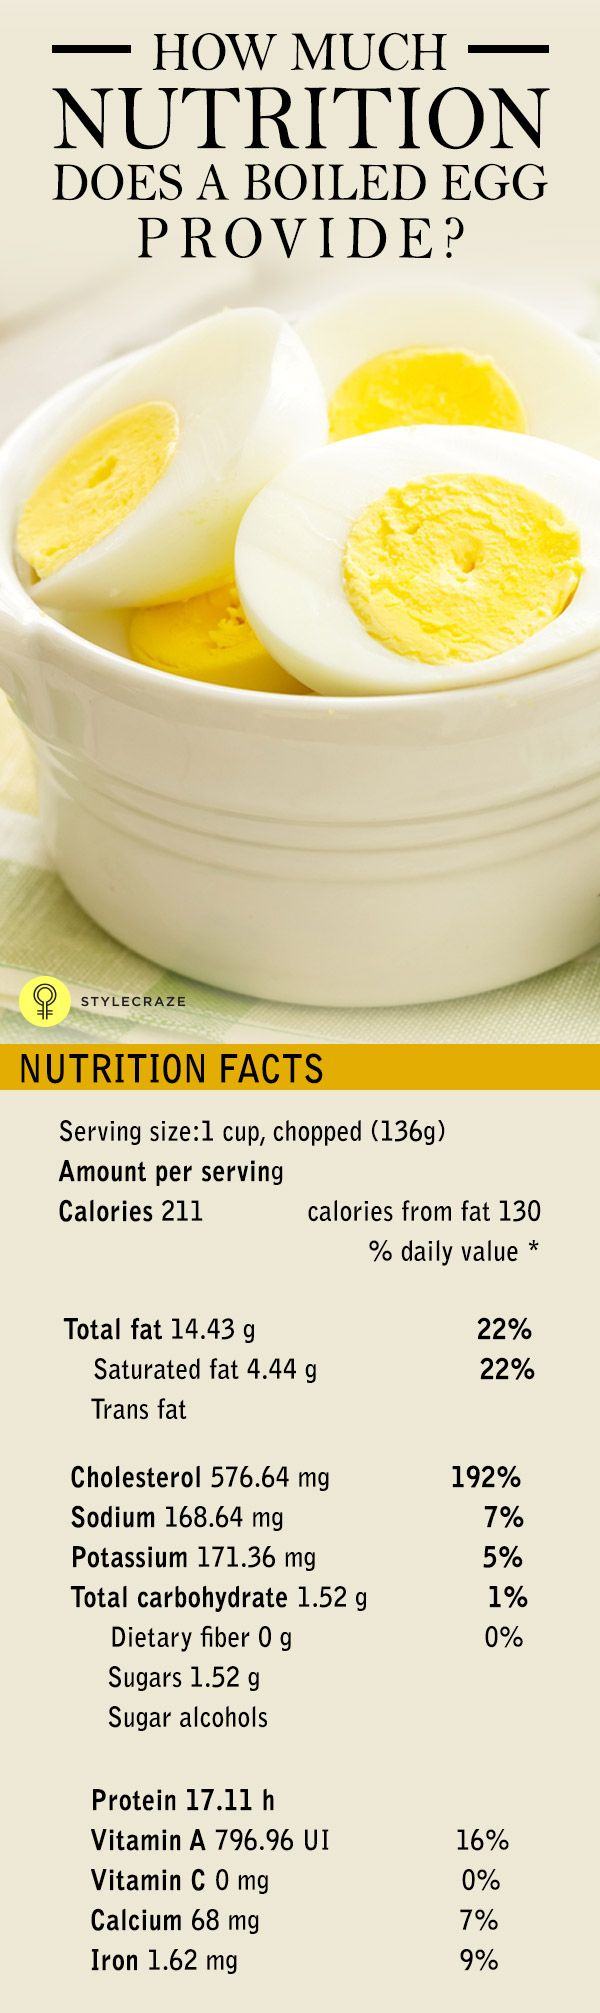 25+ best ideas about Boiled egg nutrition on Pinterest | Boiled ...